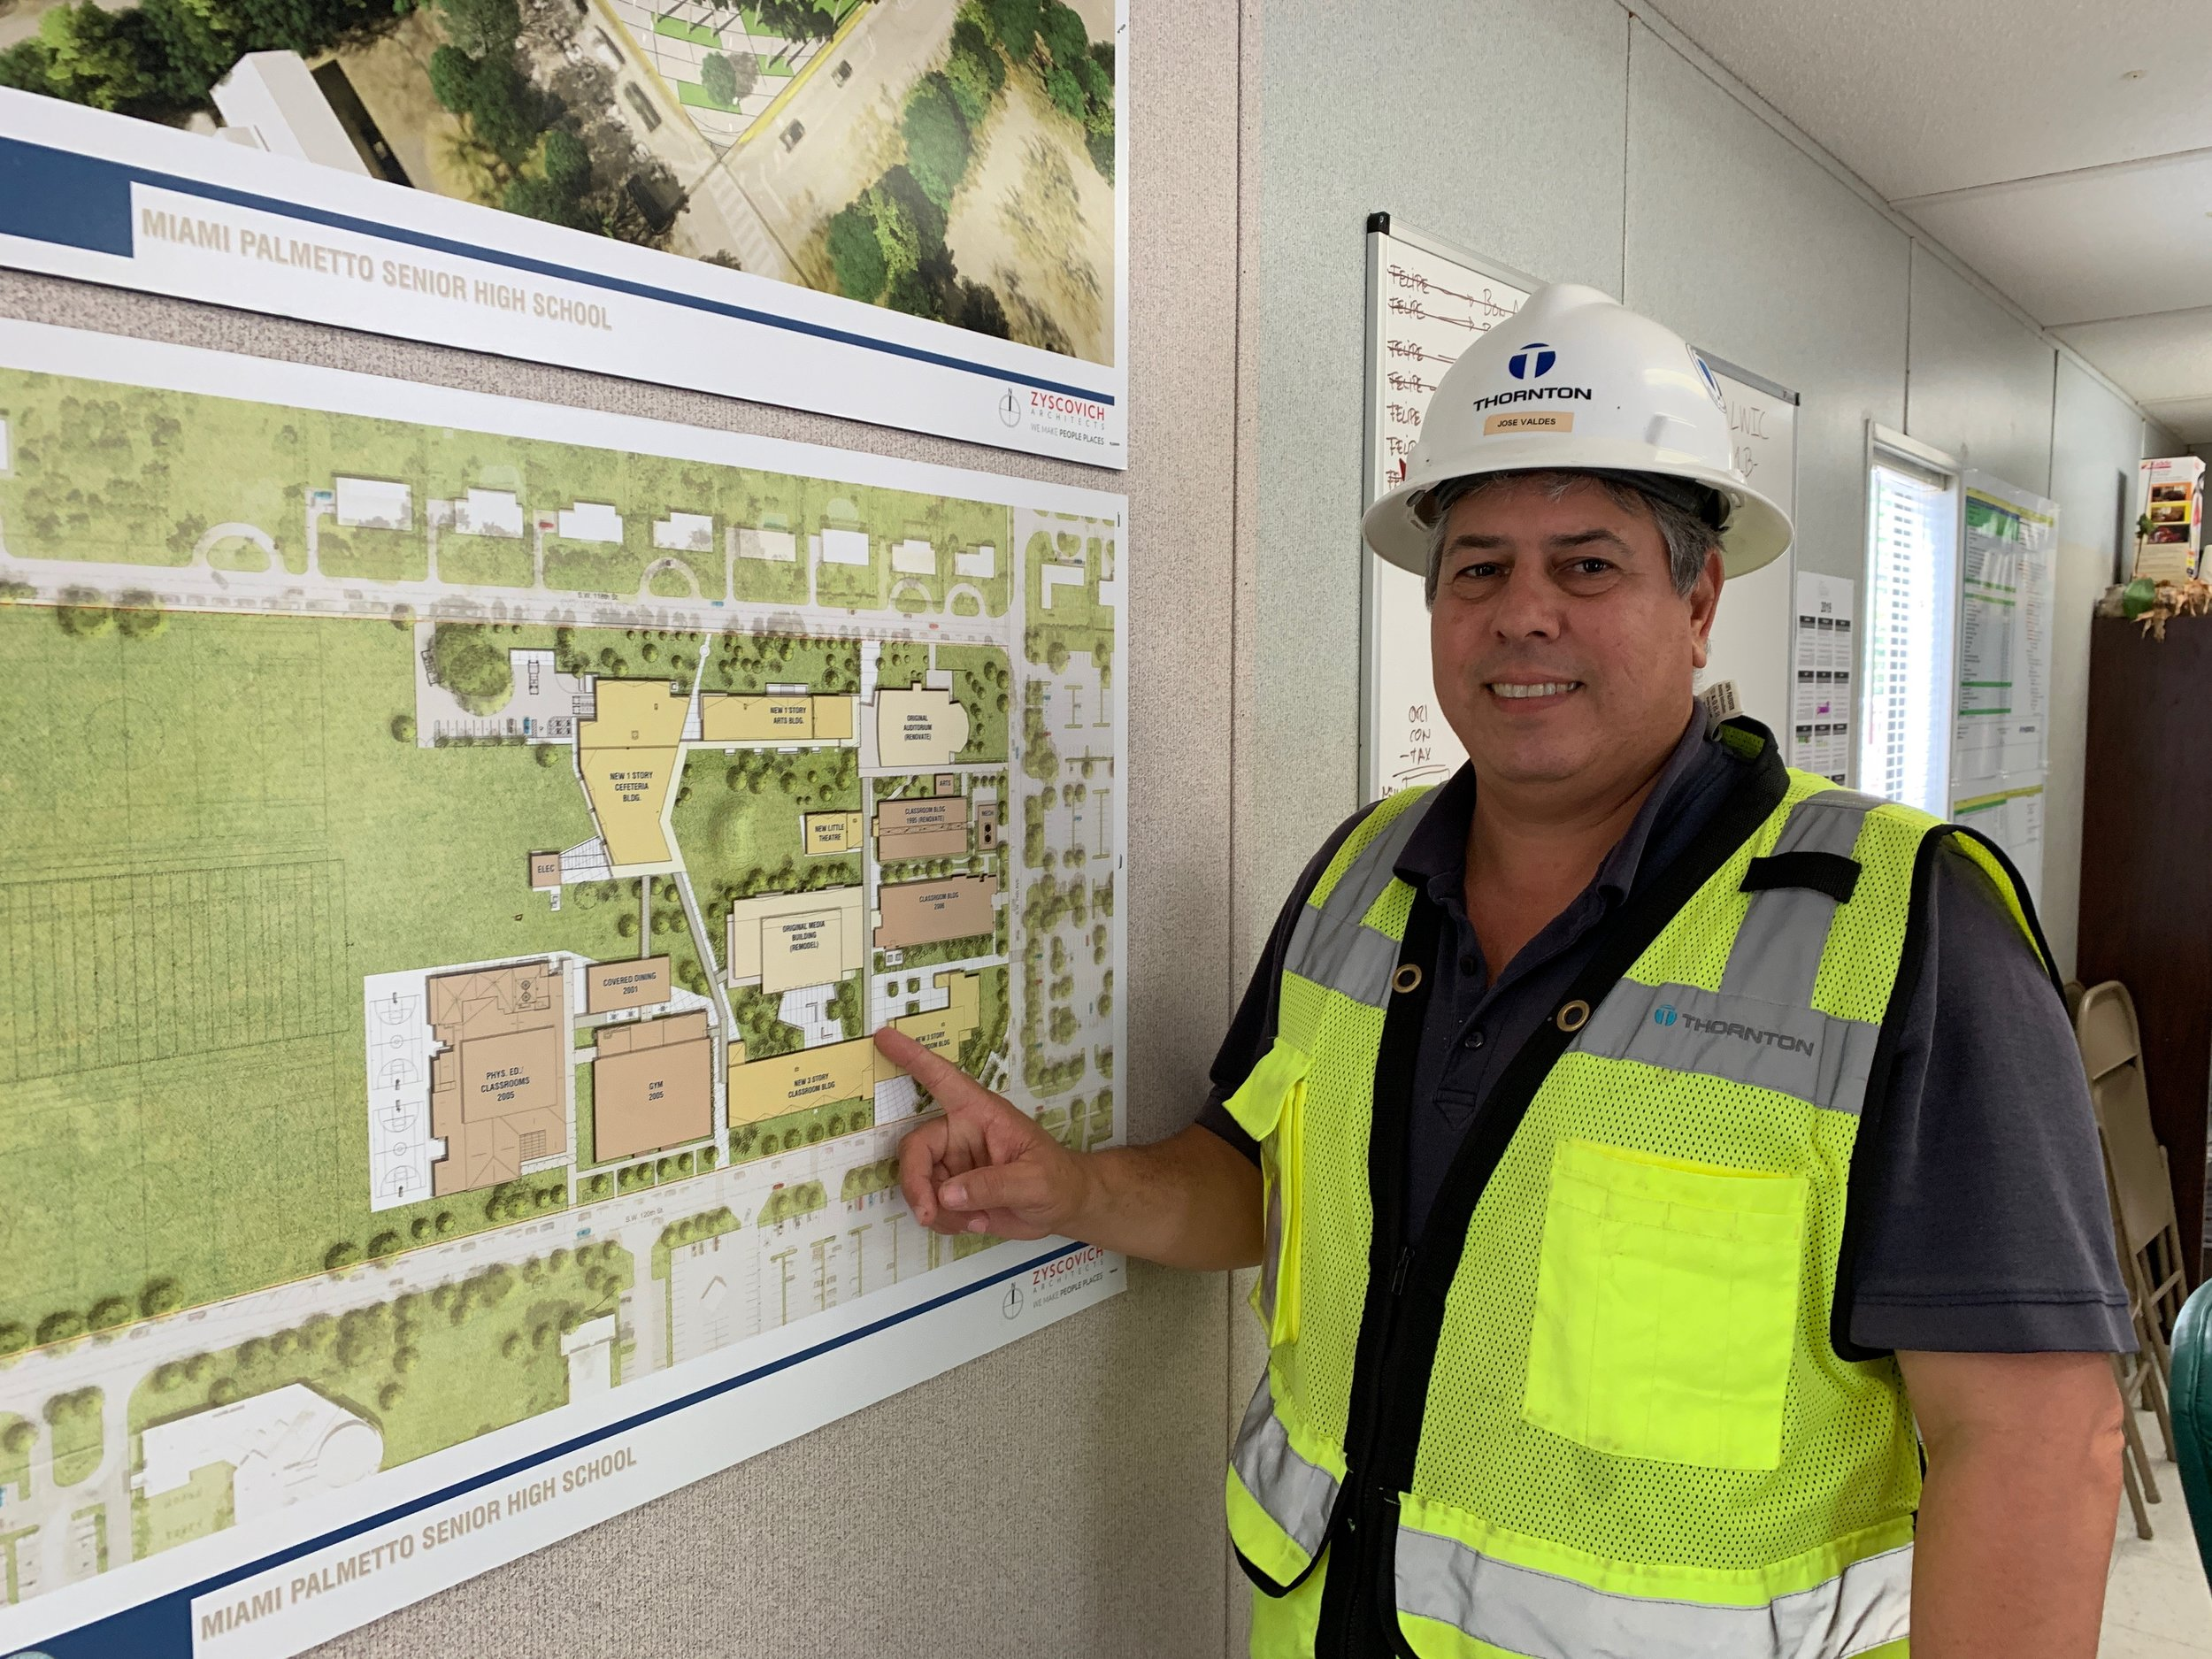 Jose Valdes, the construction superintendent, shows me the campus construction map for Miami-Palmetto Senior High School